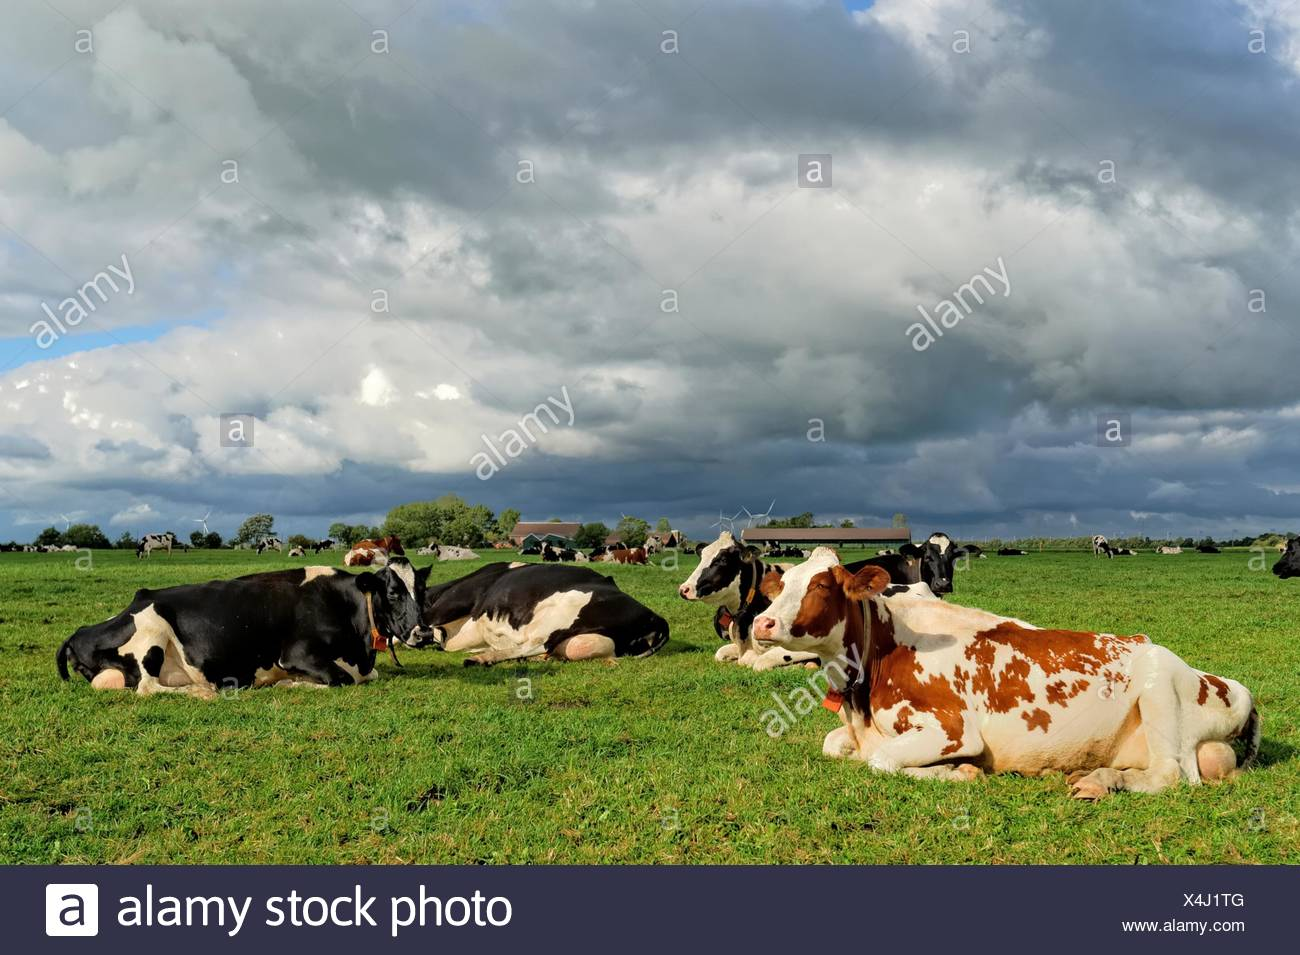 German, Landkreis Leer, Neermoor, Cows in pasture at cloudy day - Stock Image